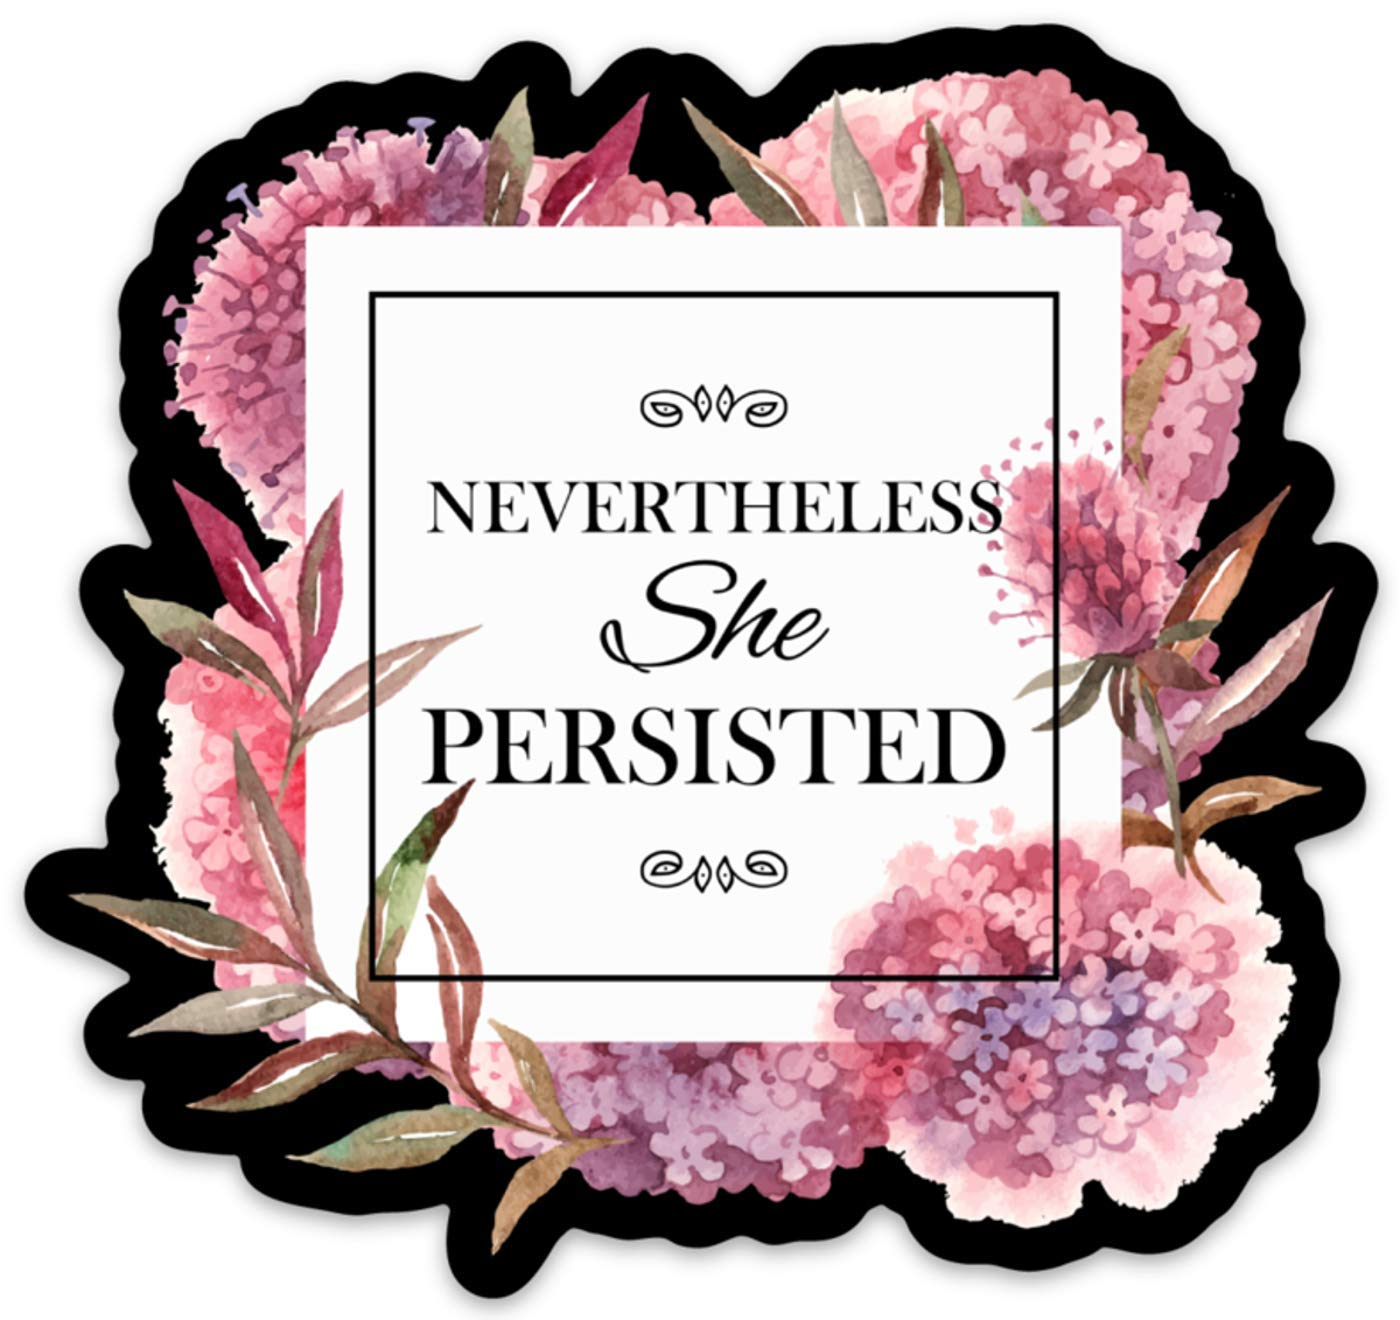 "Nevertheless She Persisted Vinyl Sticker Decal Waterproof for Laptops, Water Bottles, Car etc. 4"" x 4"" Feminist, Female, Girl Power"